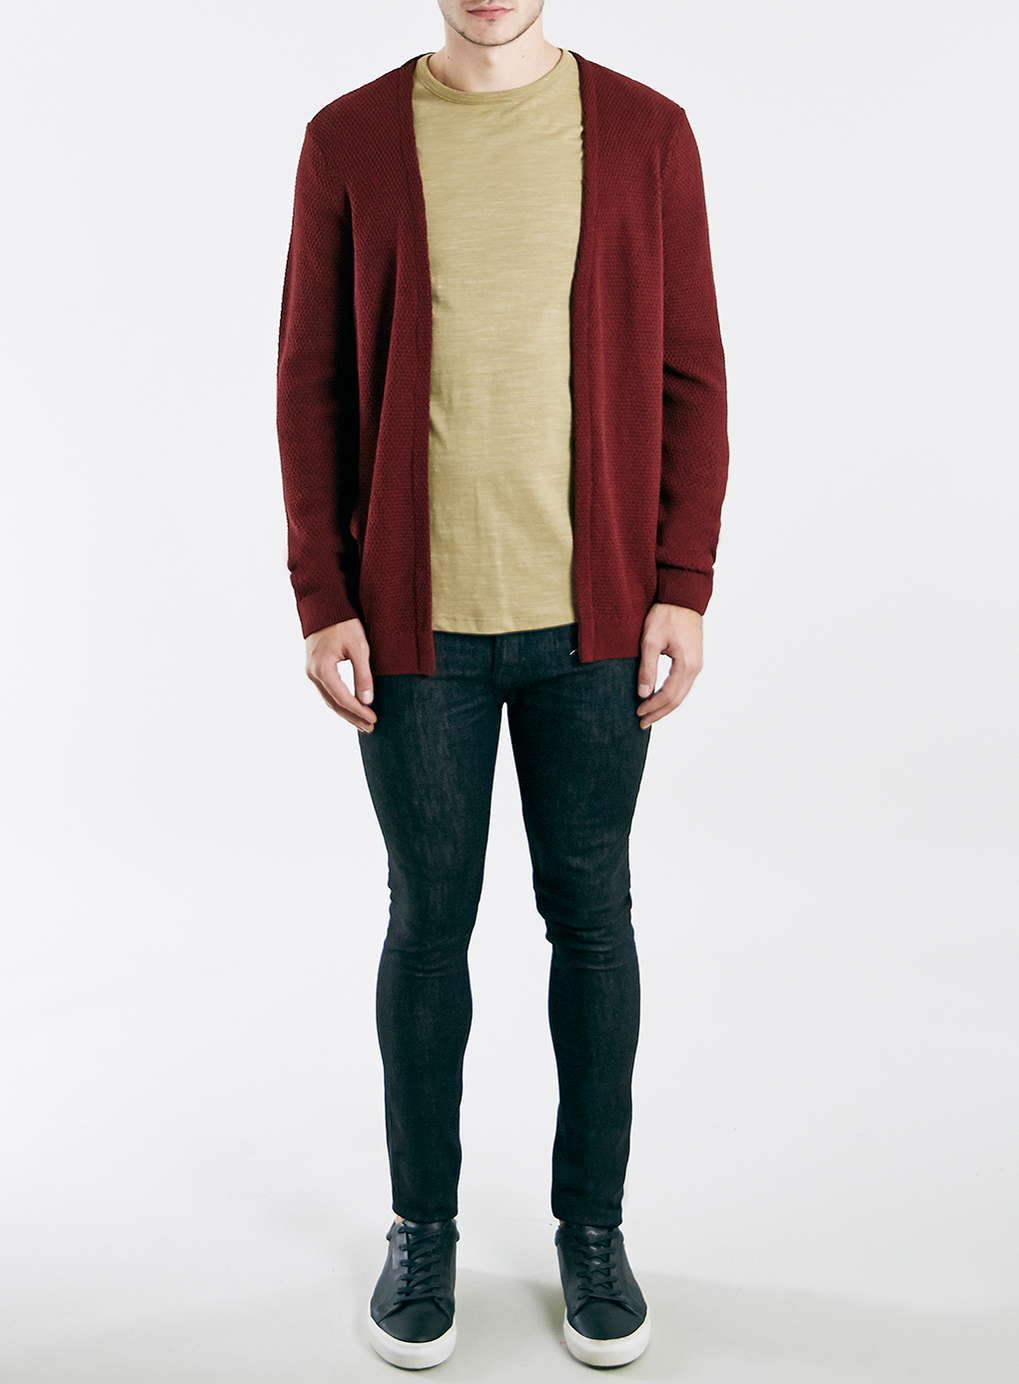 Burgundy Open Cardigan - New Arrivals - New In | Open cardigan